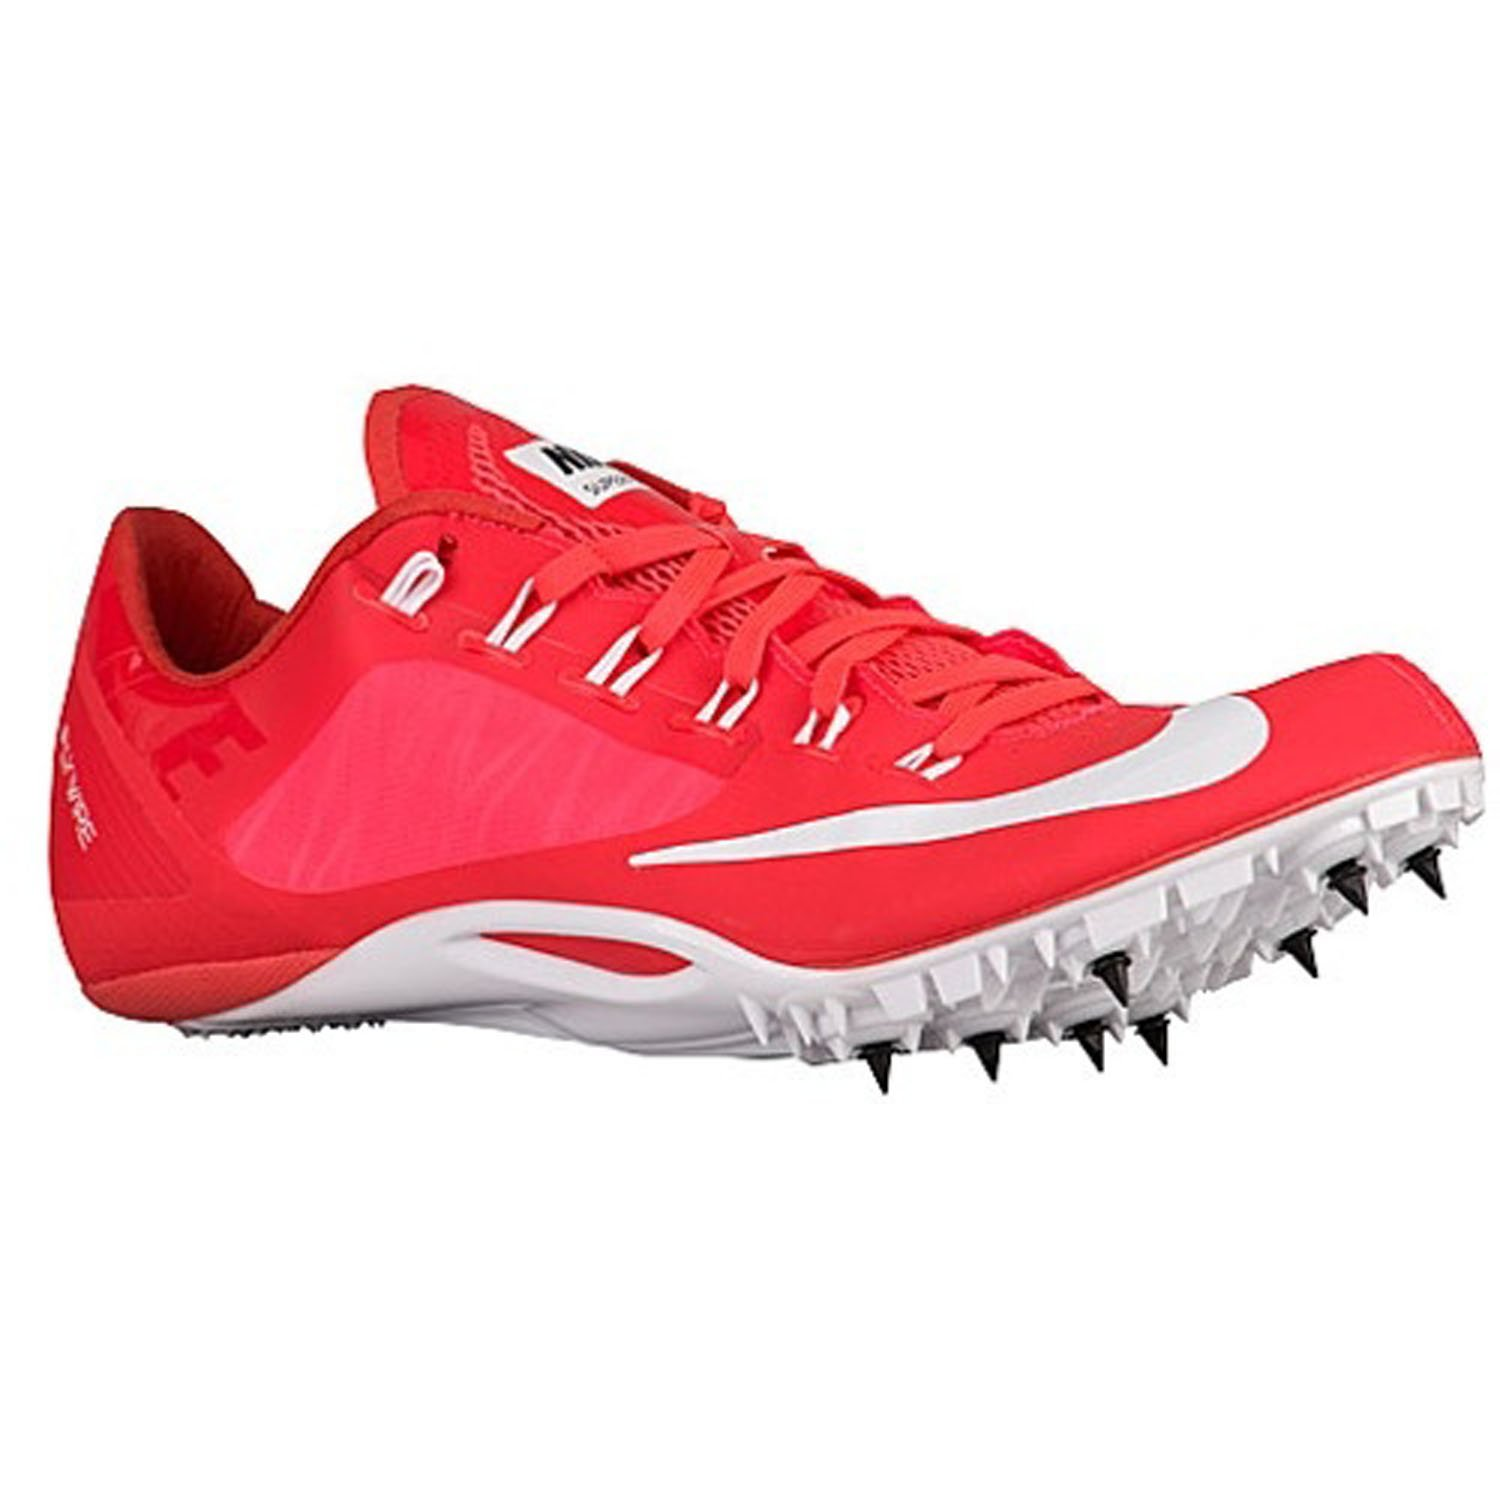 outlet store 6bc84 74399 new Nike Zoom Superfly R4 Track Spikes Shoes Hyper Crimson White Mens Size  8 (Womens 9.5)  Amazon.ca  Shoes   Handbags